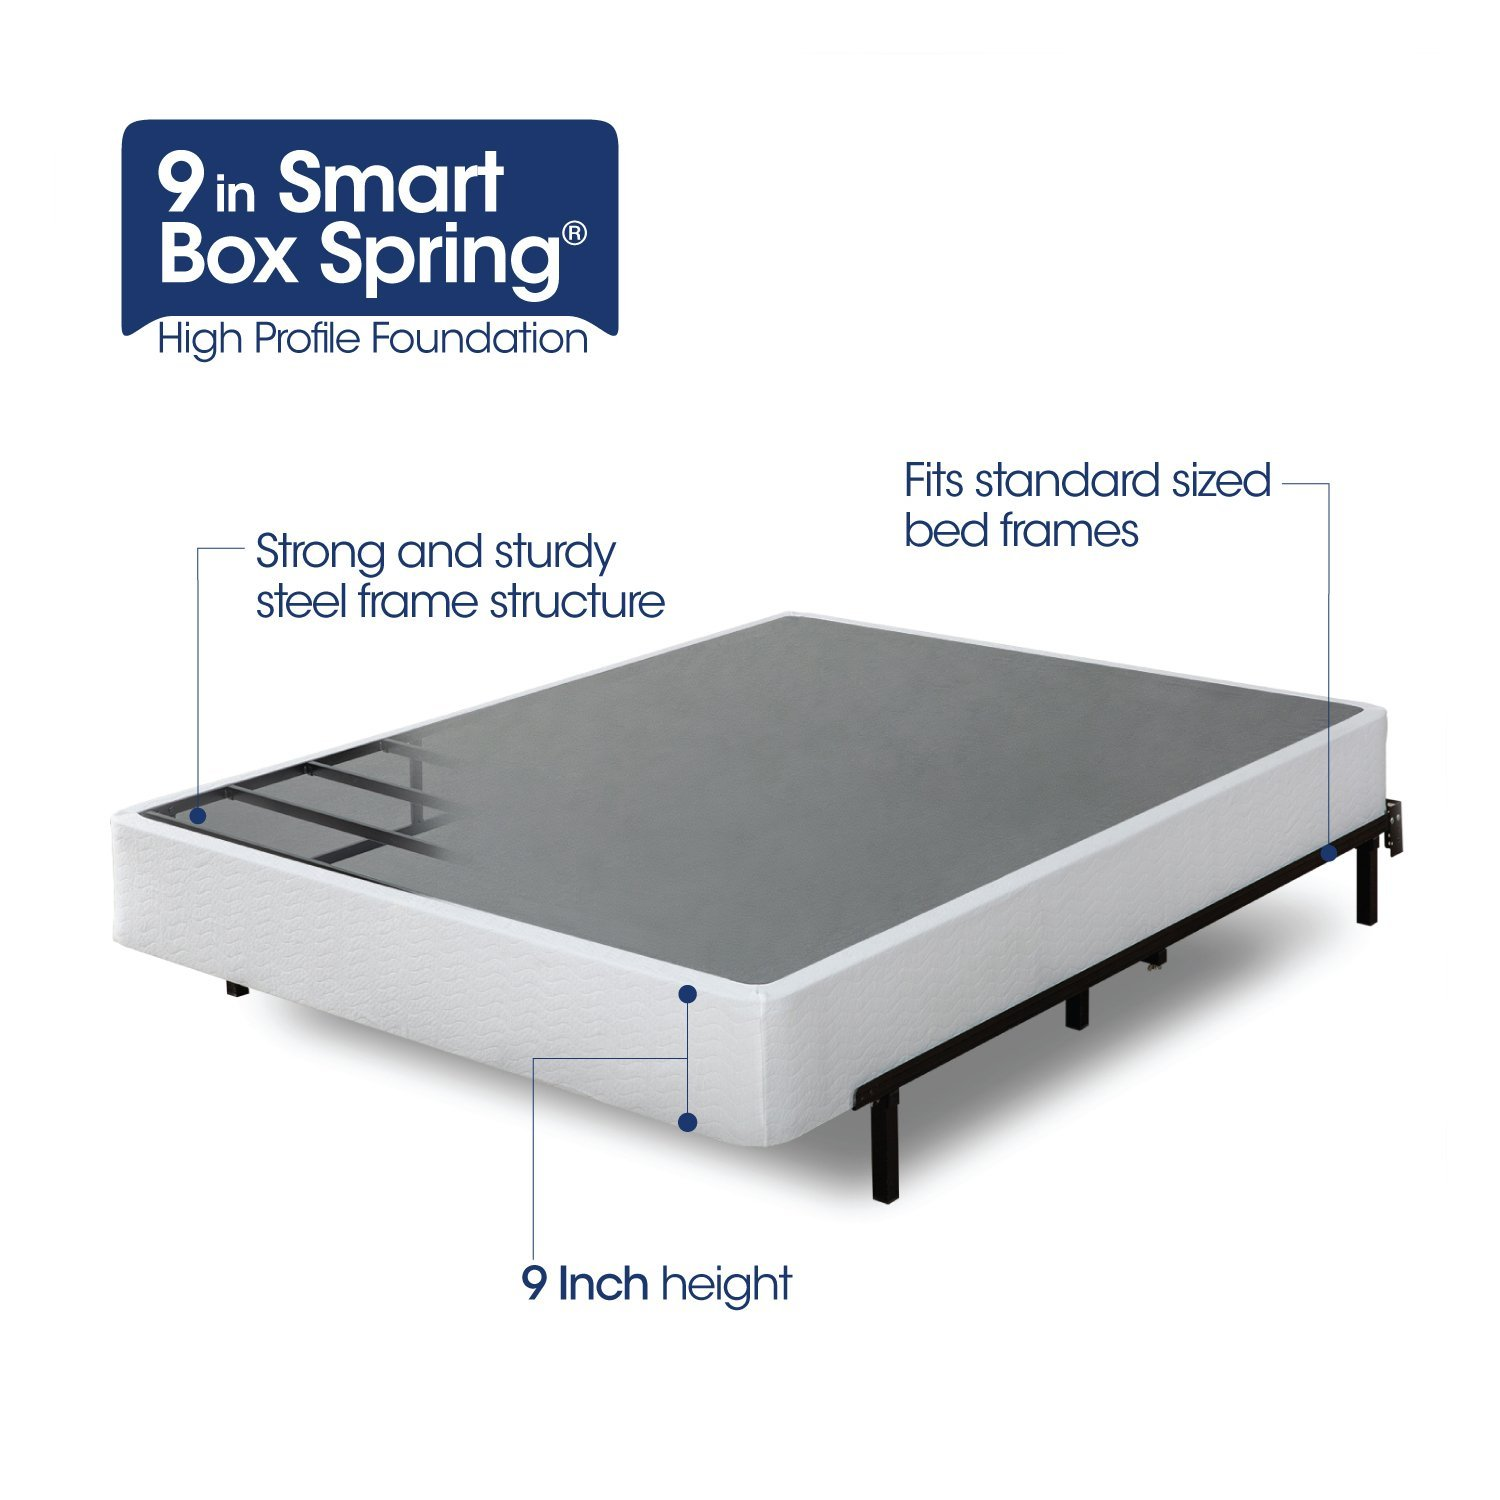 Twin Bed Mattress And Box Spring Prices Design Spillo Caves